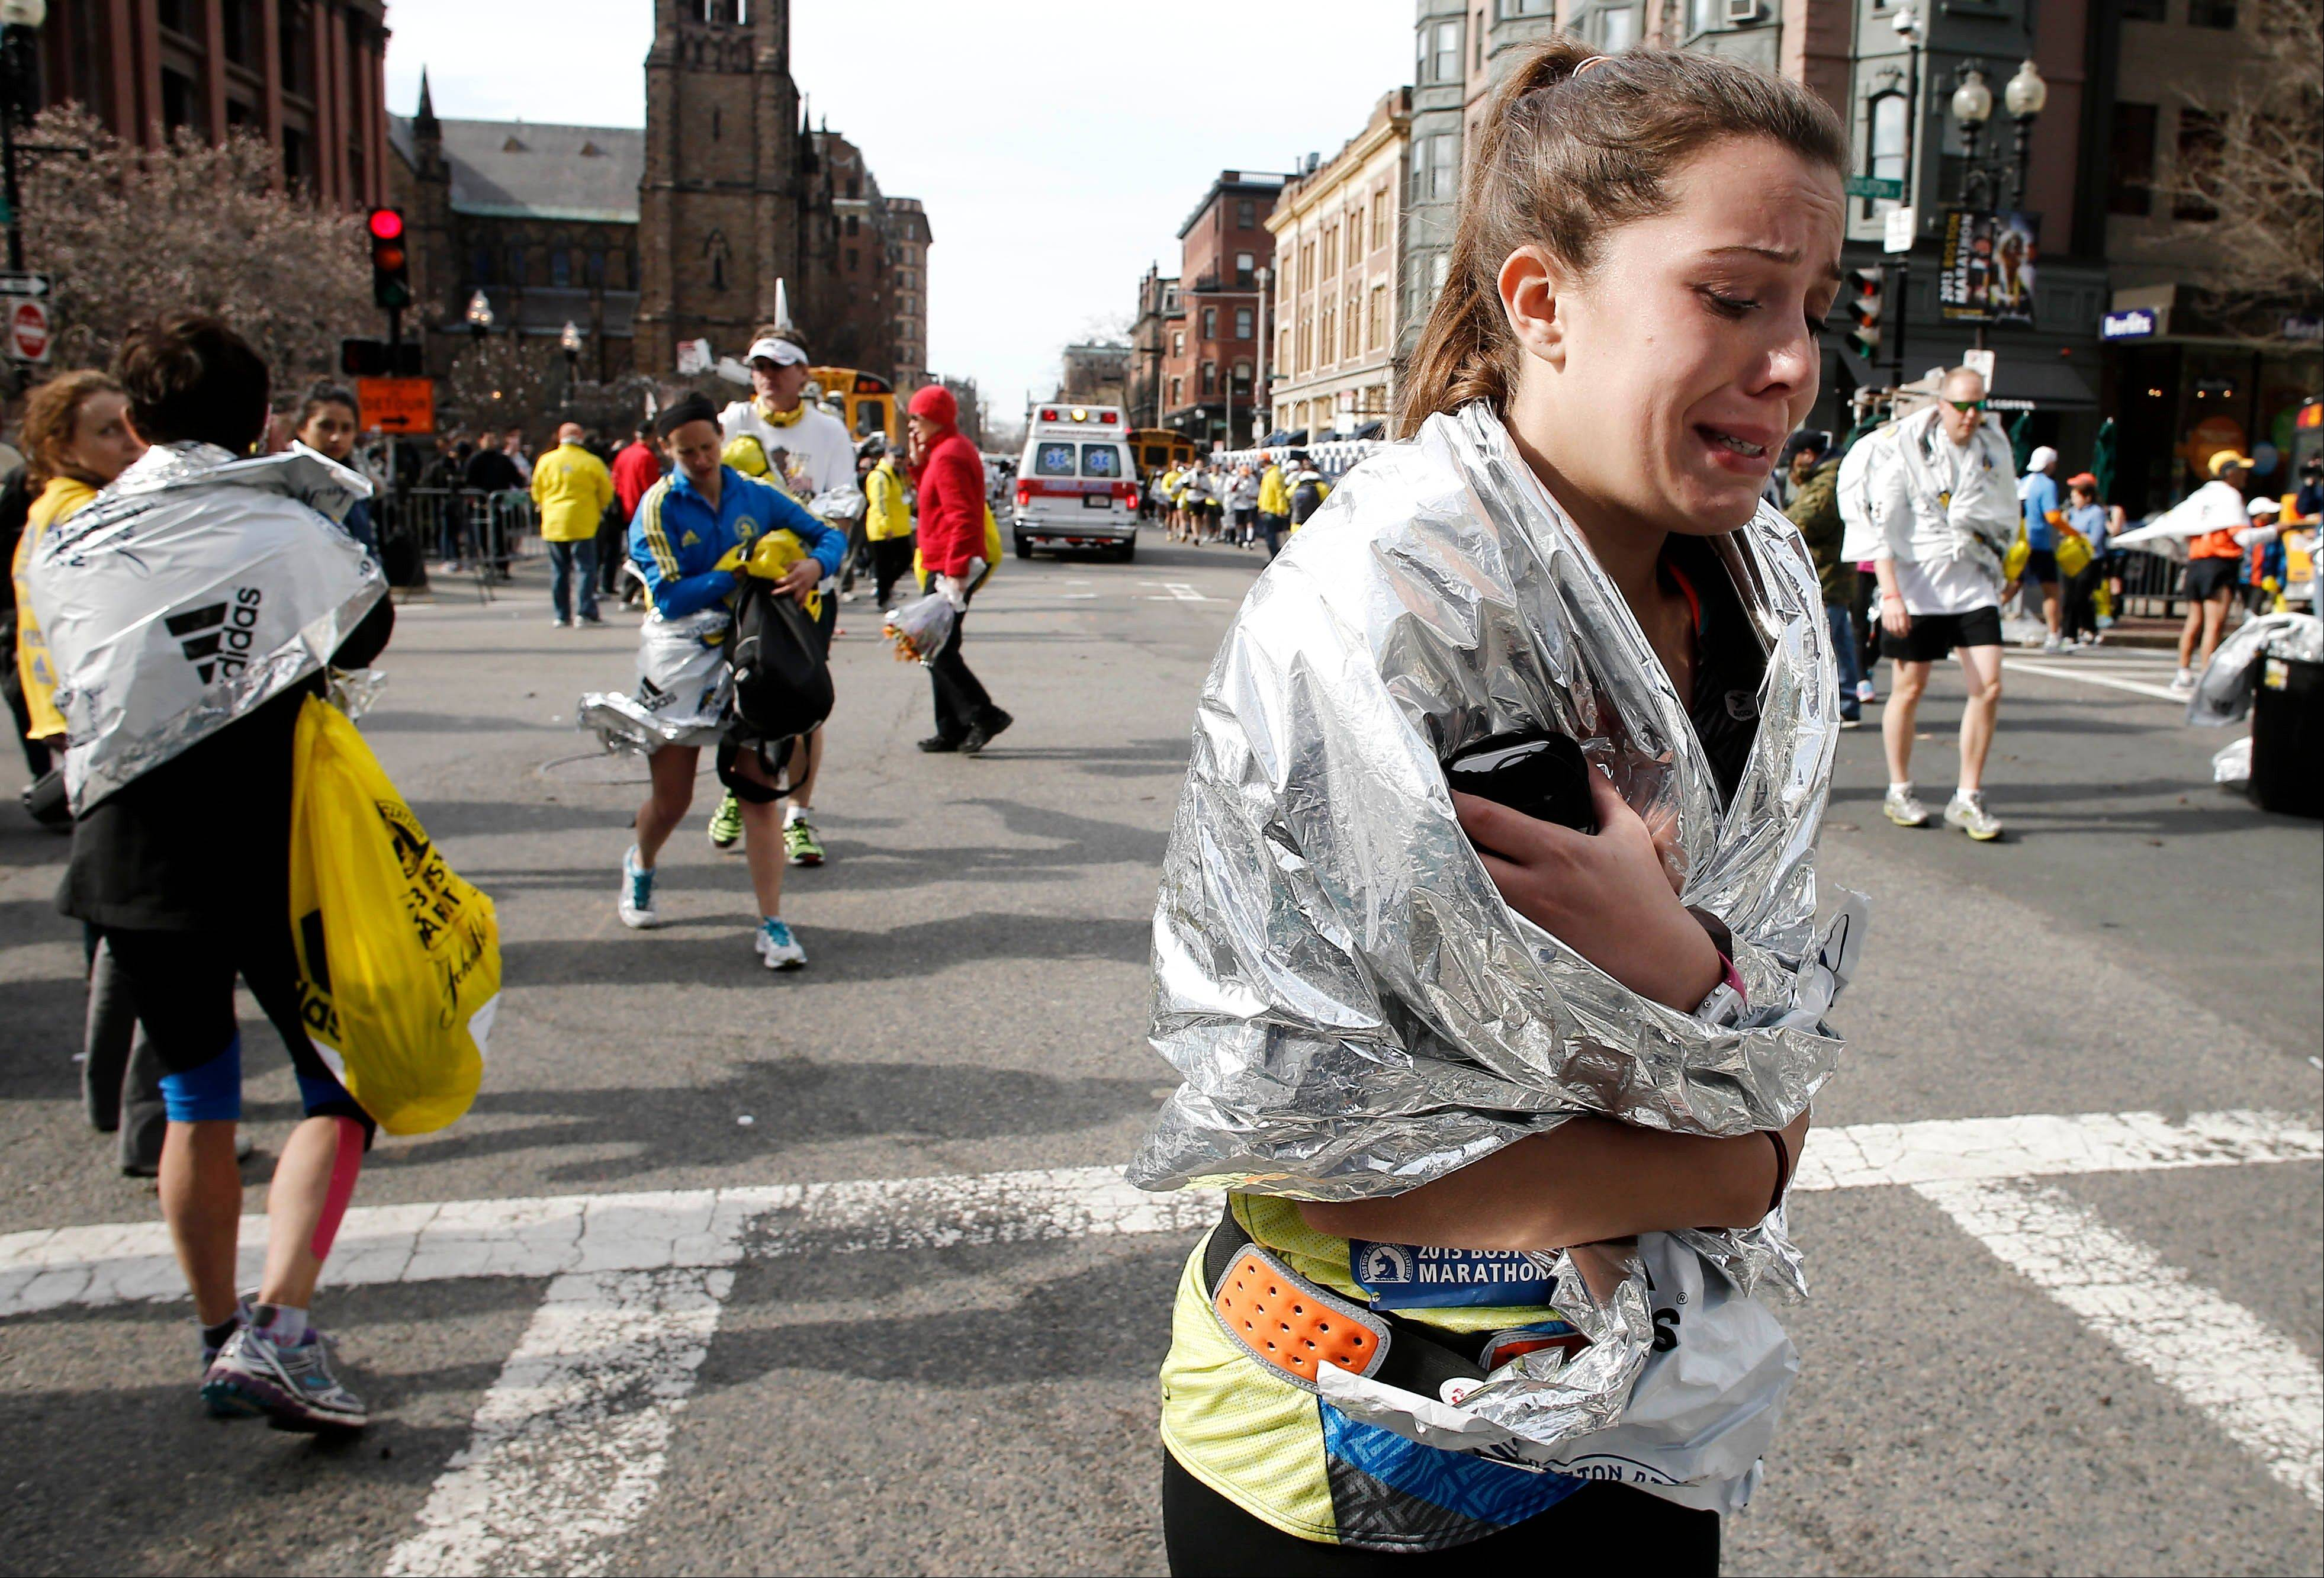 An unidentified Boston Marathon runner leaves the course near Copley Square after the explosions in Boston on Monday.